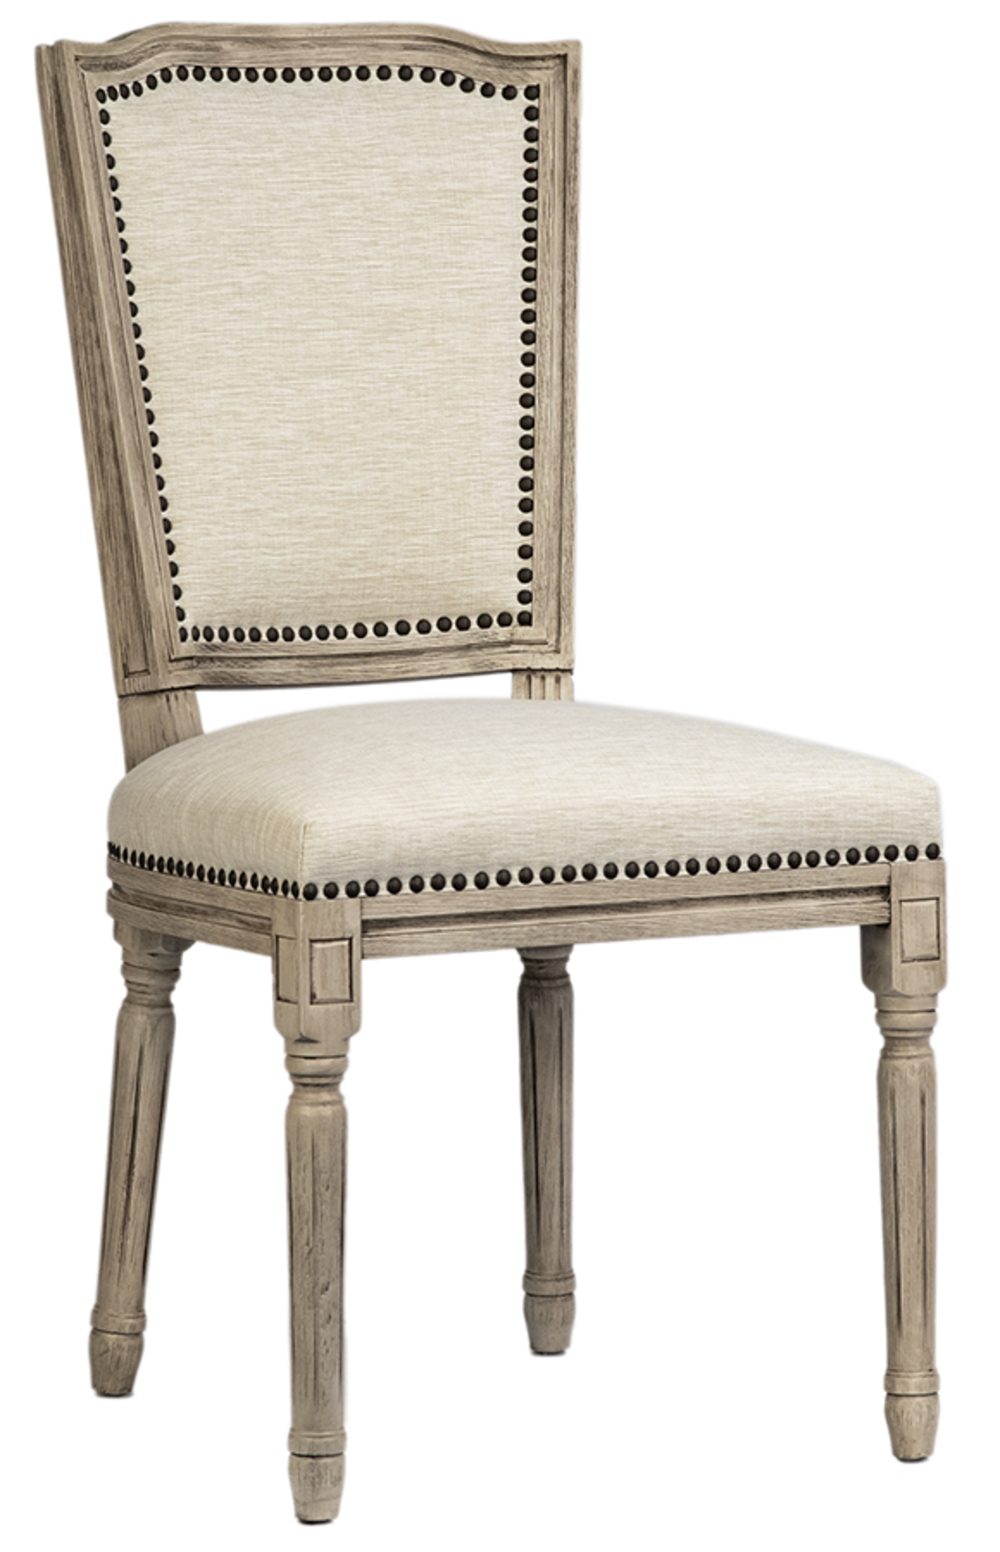 Dovetail Furniture - Arthas Dining Chair